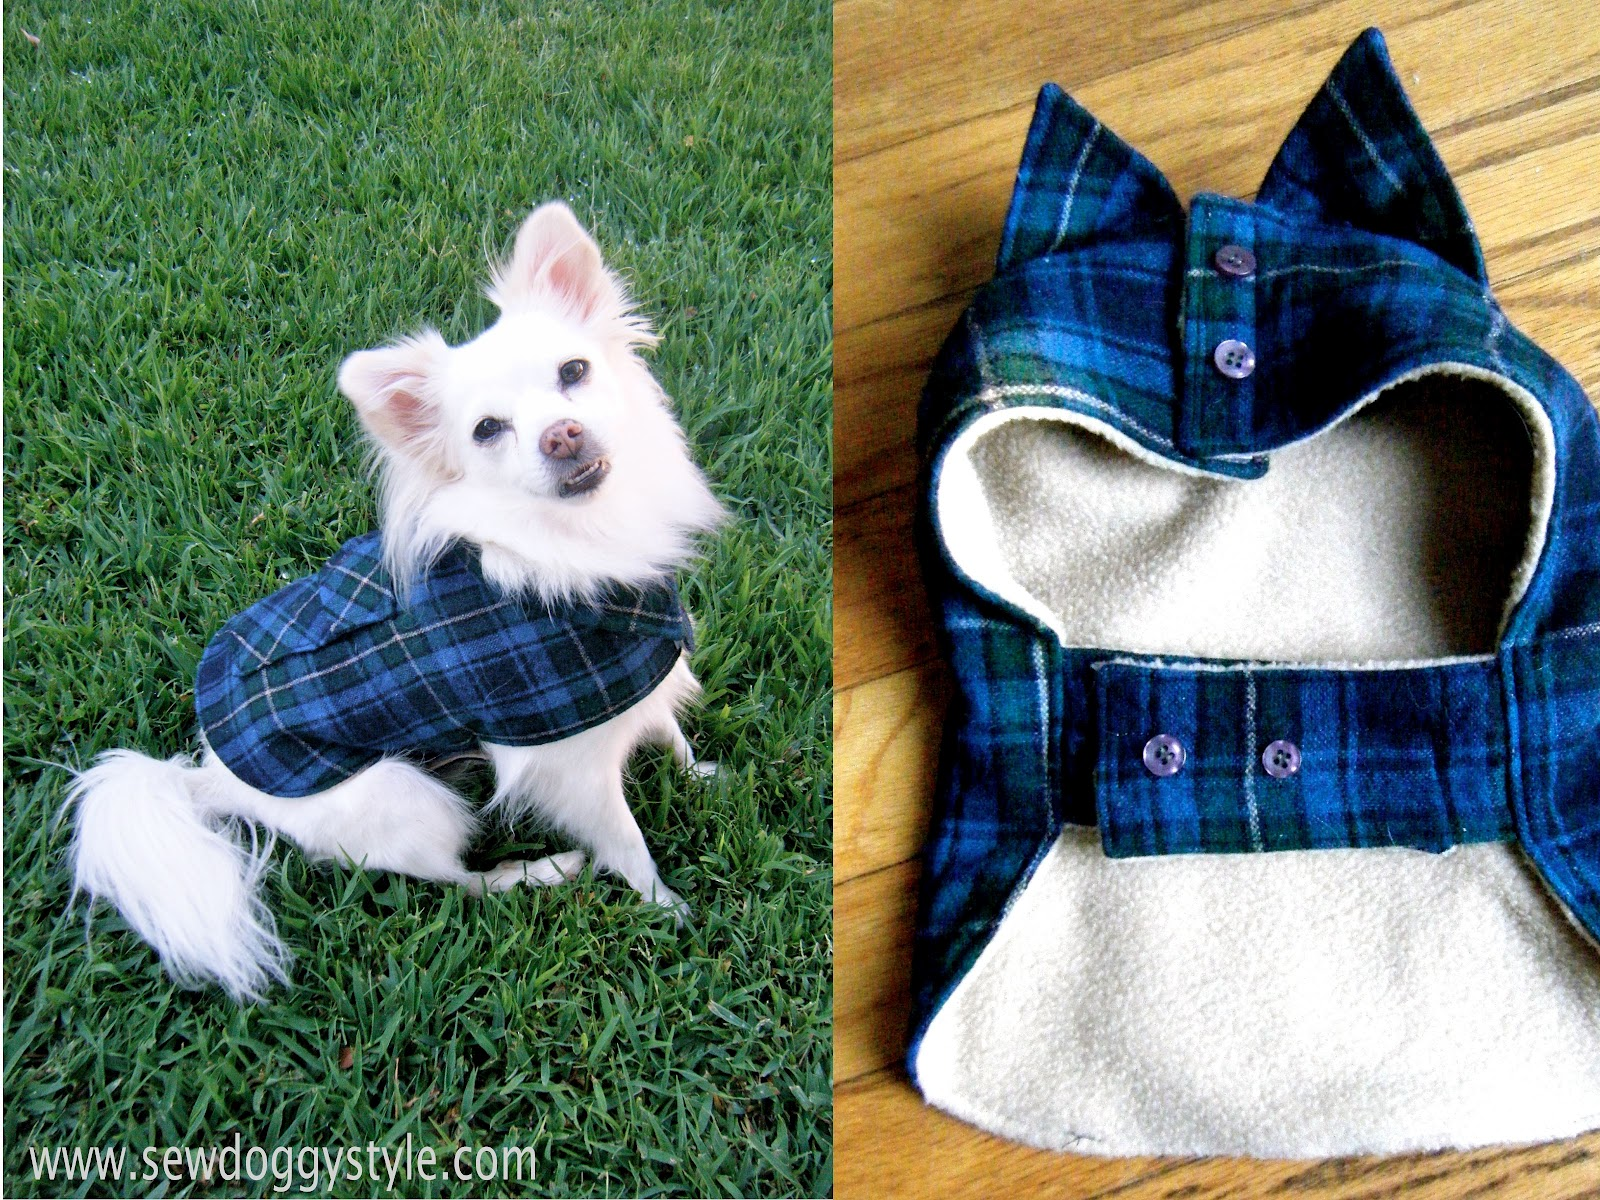 Sew DoggyStyle: DIY Pet Coat Pattern - Sewing it Together!